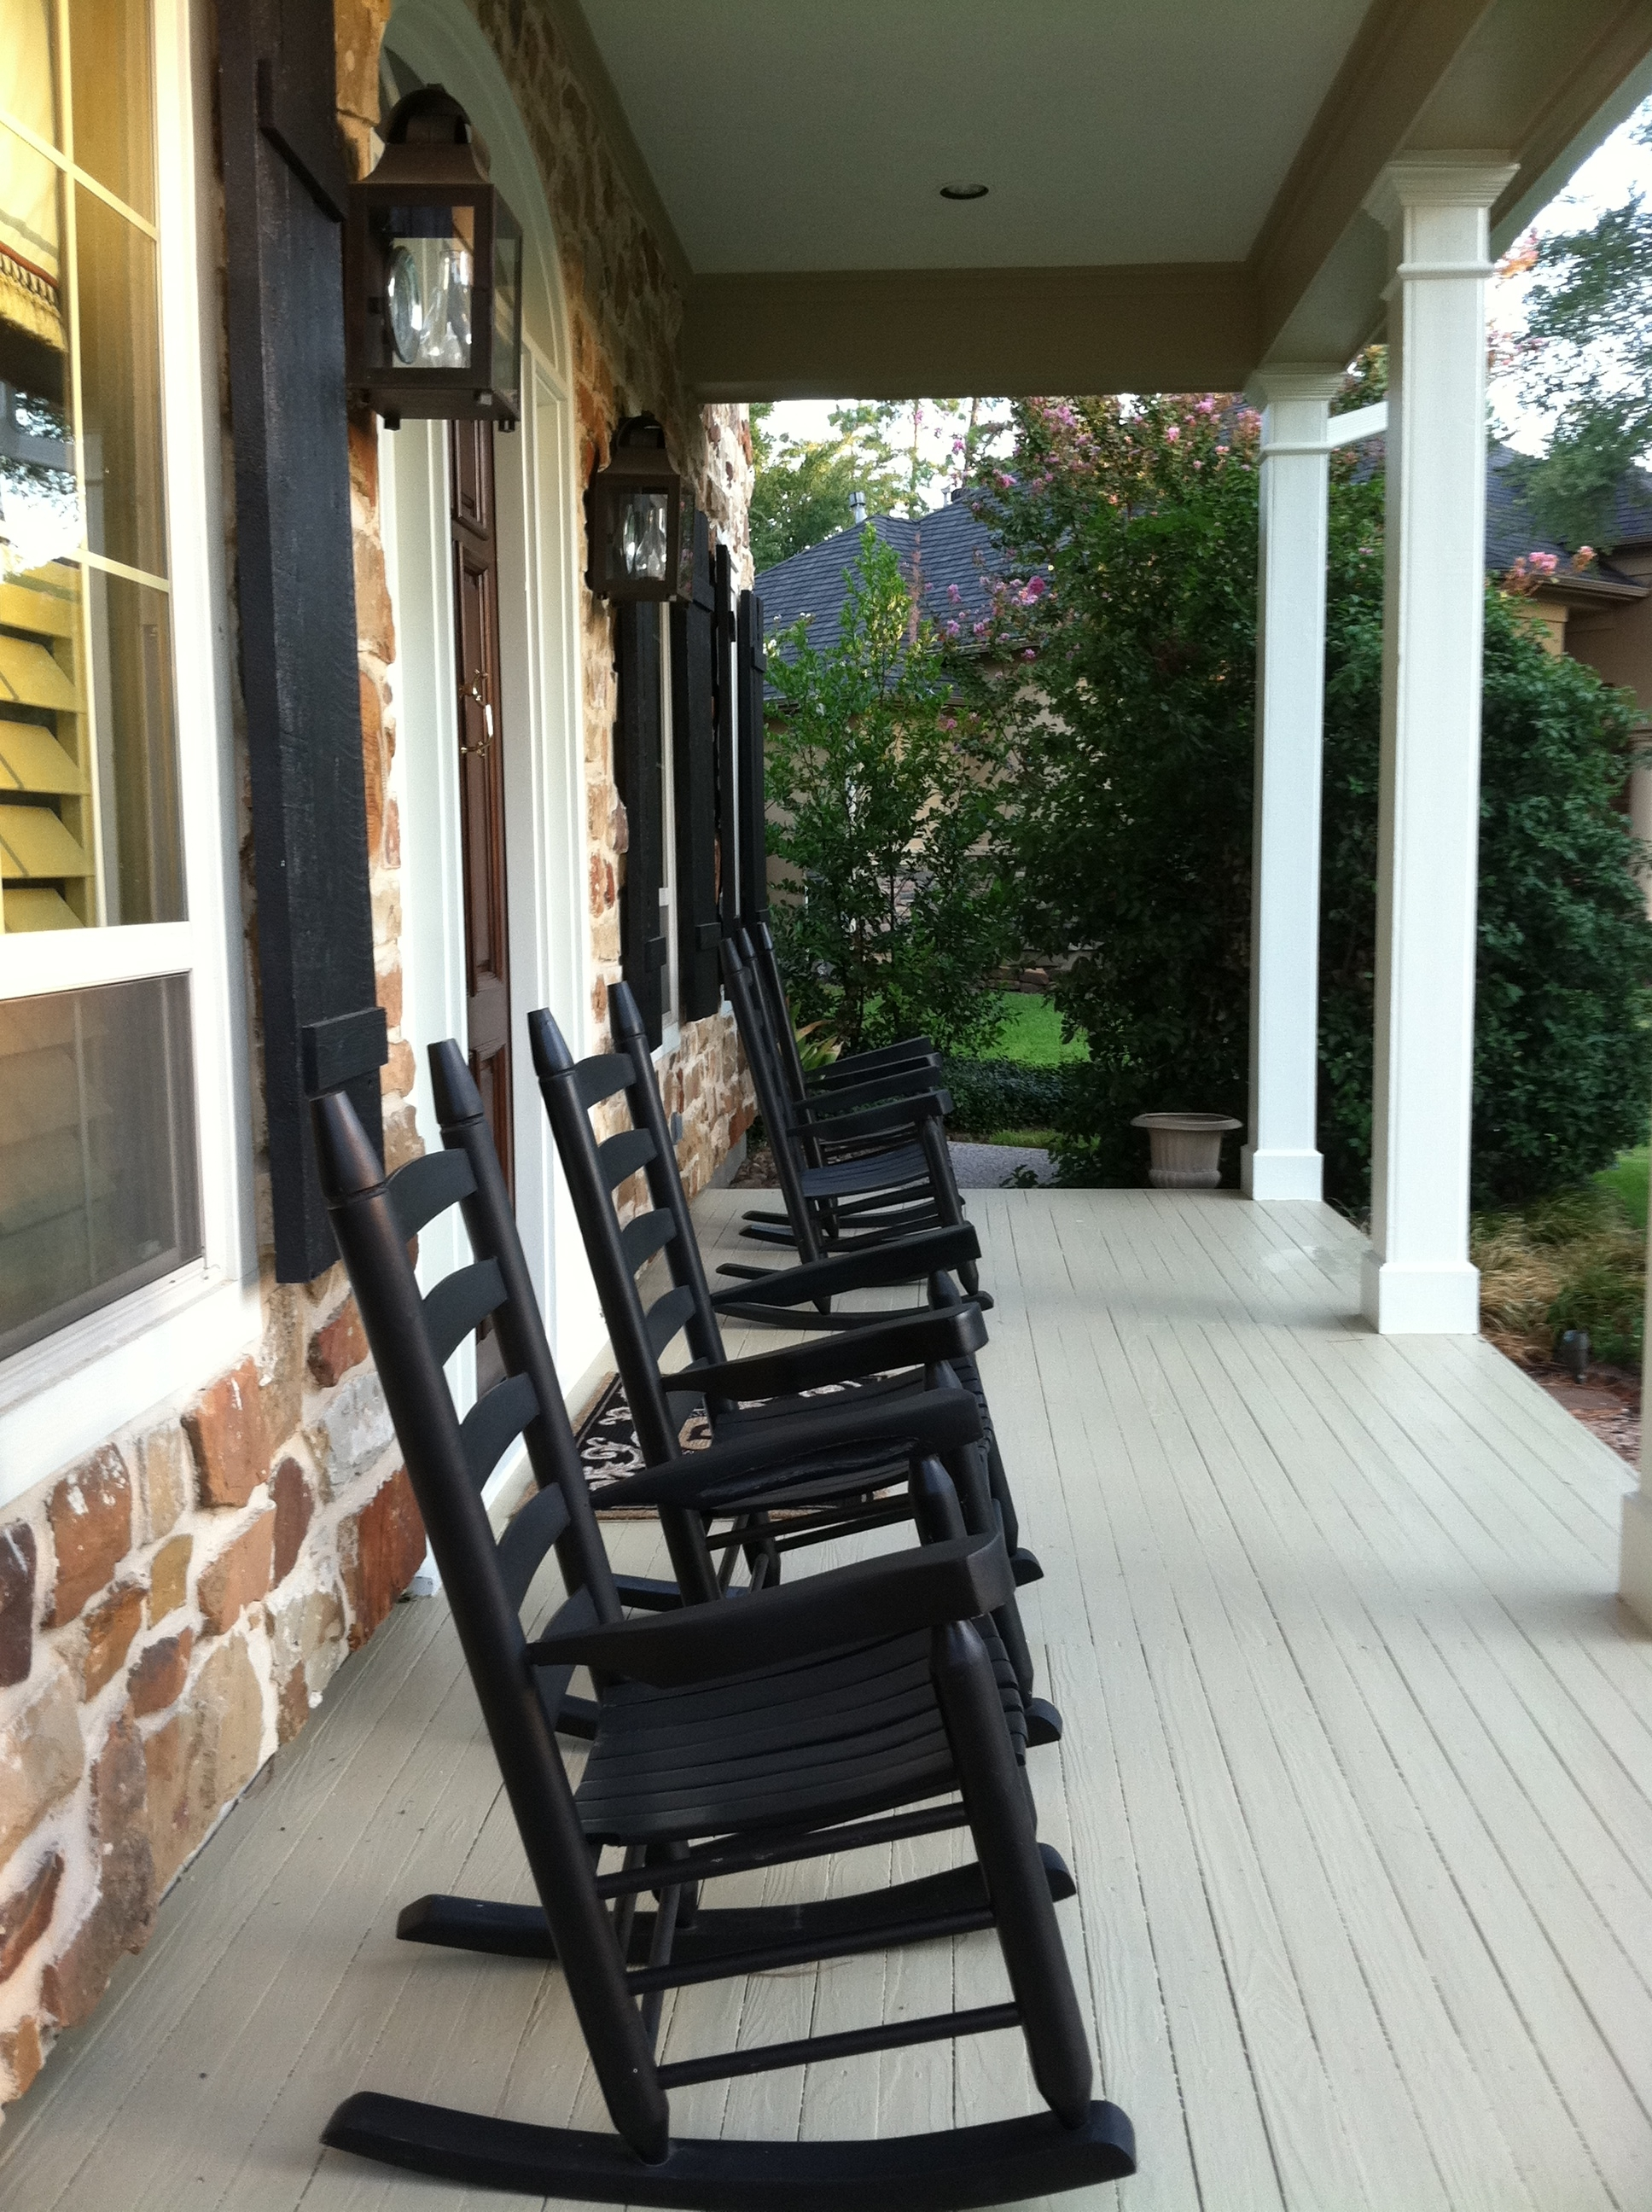 Front Porch Furnitures Set Using Black Stained Wooden Rocking Chair Inside Rocking Chairs For Front Porch (#3 of 15)